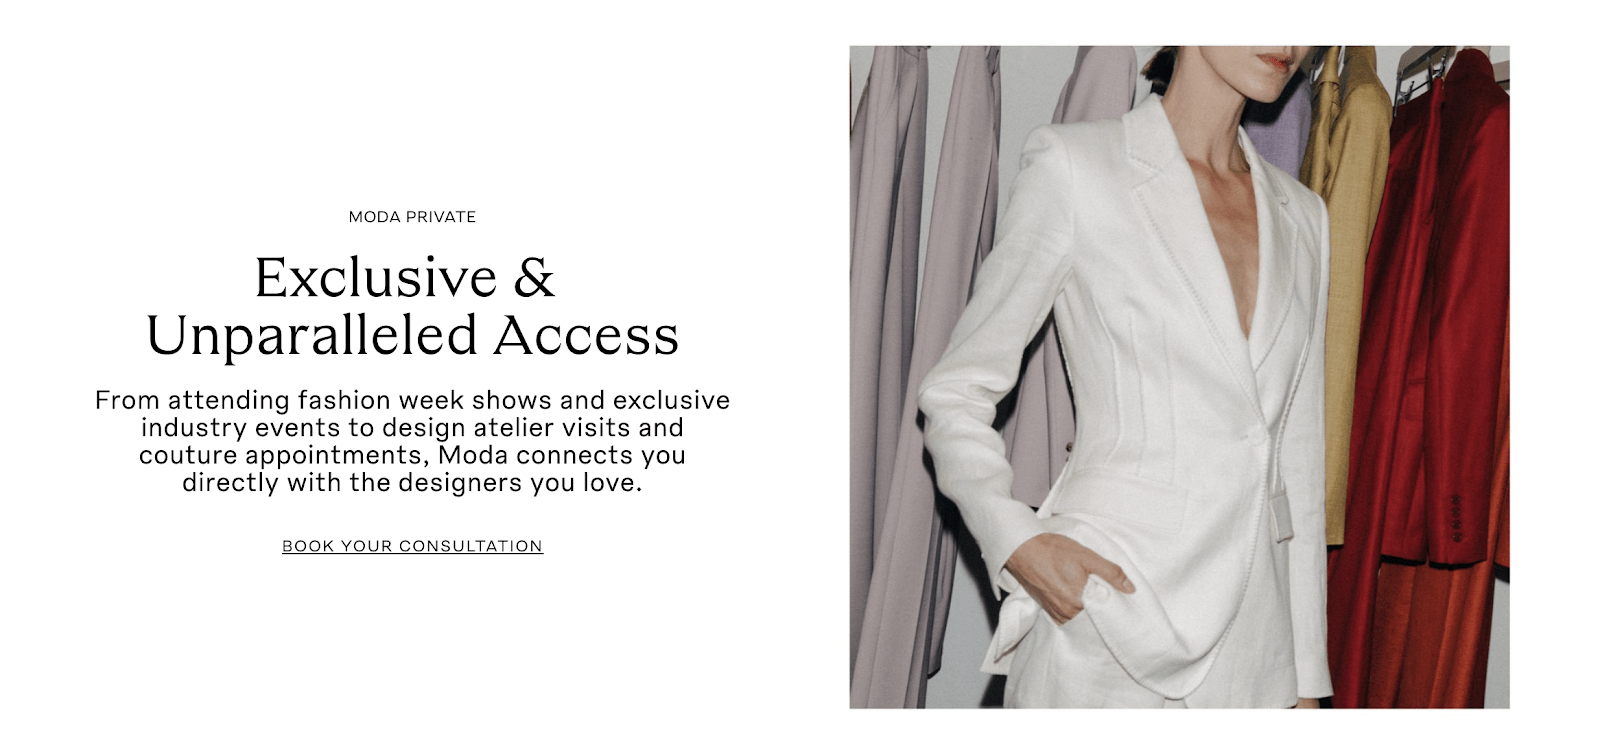 Moda Operandi also has showrooms in New York, London, Hong Kong where customers can request a session with a private stylist or partake in members-only events, classes and panels.